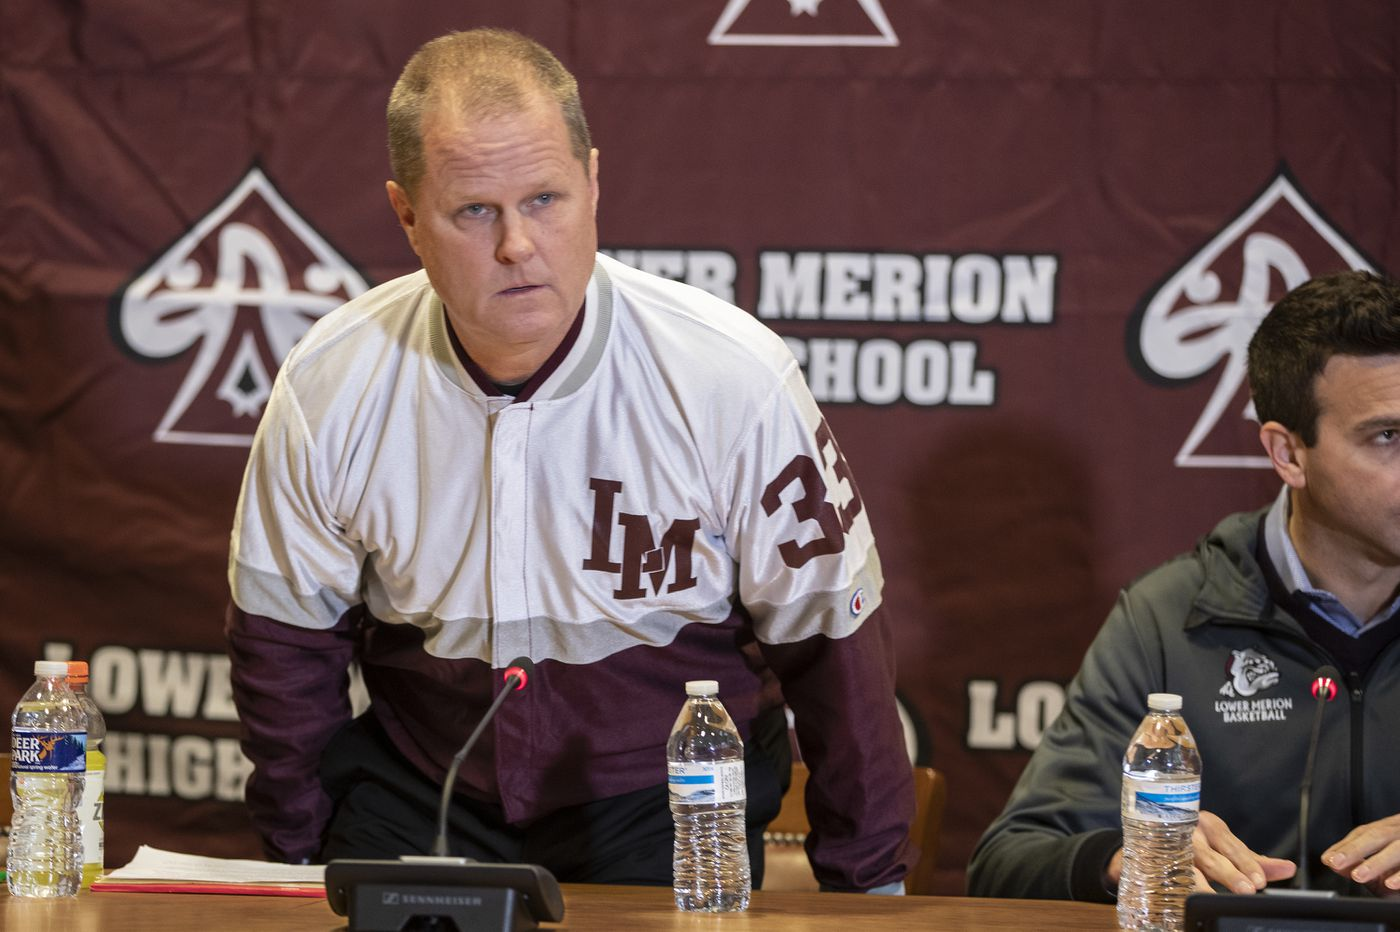 Lower Merion coach Gregg Downer reflects on his 'hero,' Kobe Bryant